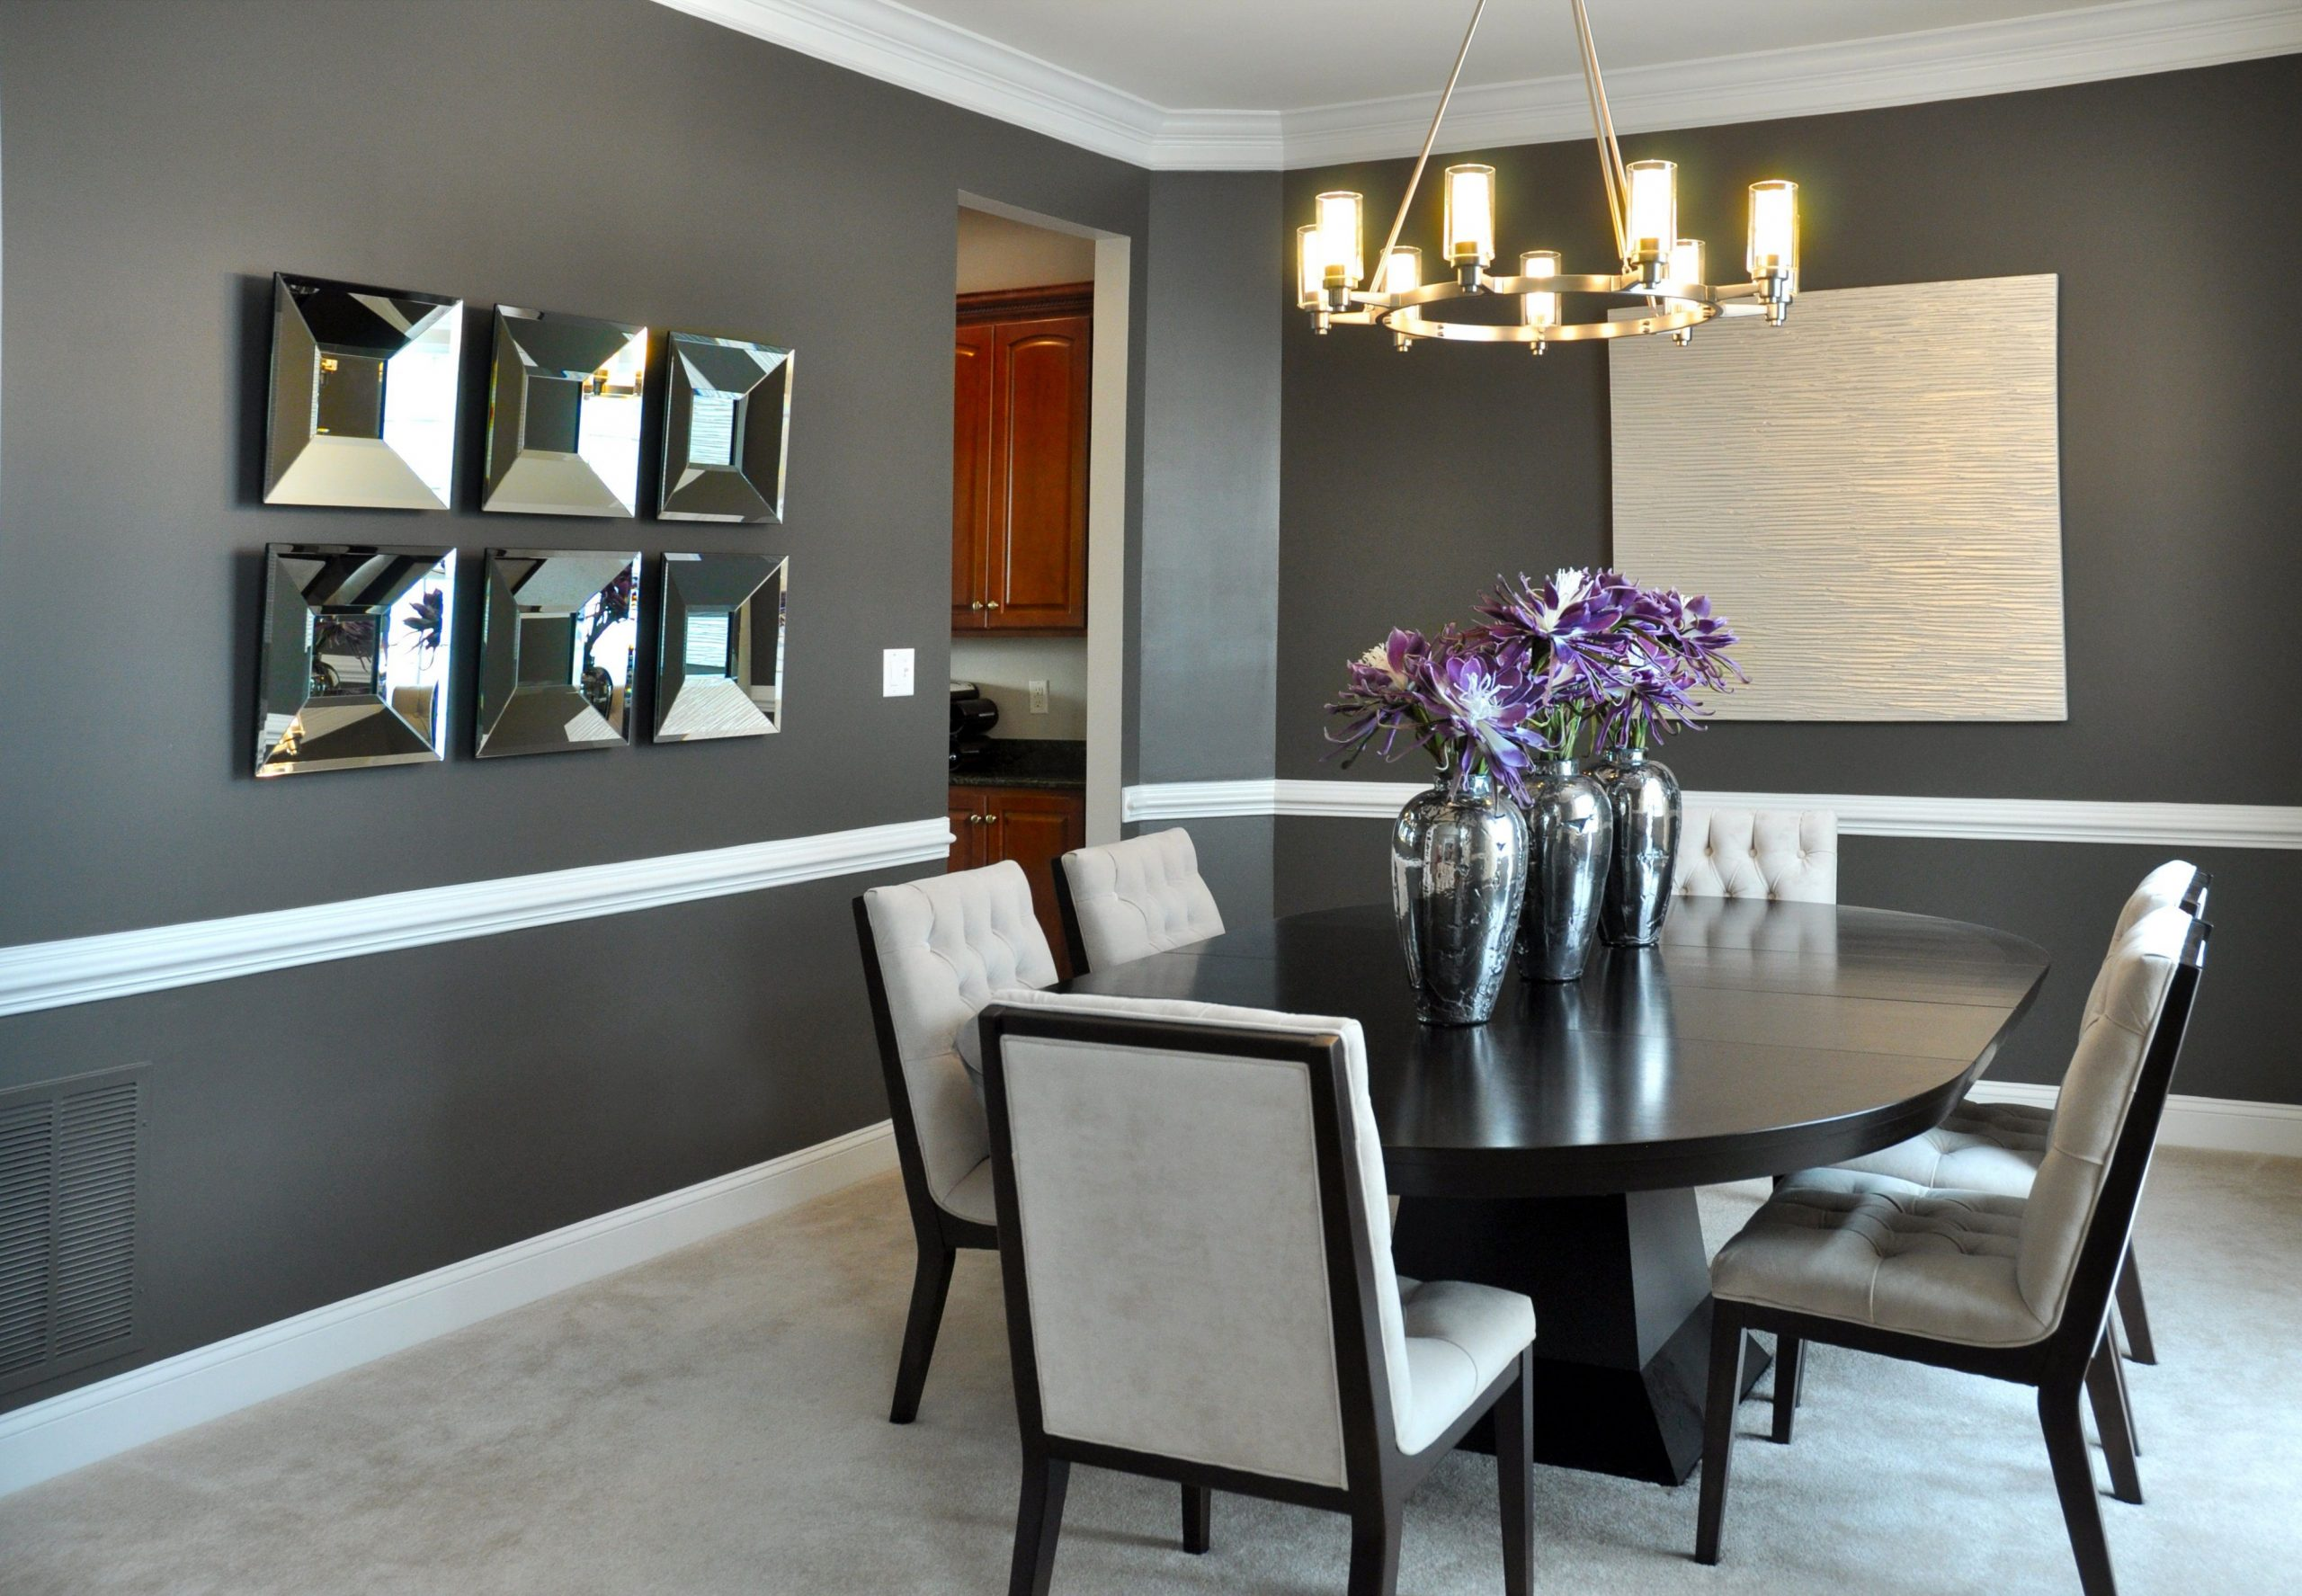 Edgy Style in Modern Dining Room Decoration  Dining room colors  - Dining Room Ideas Contemporary